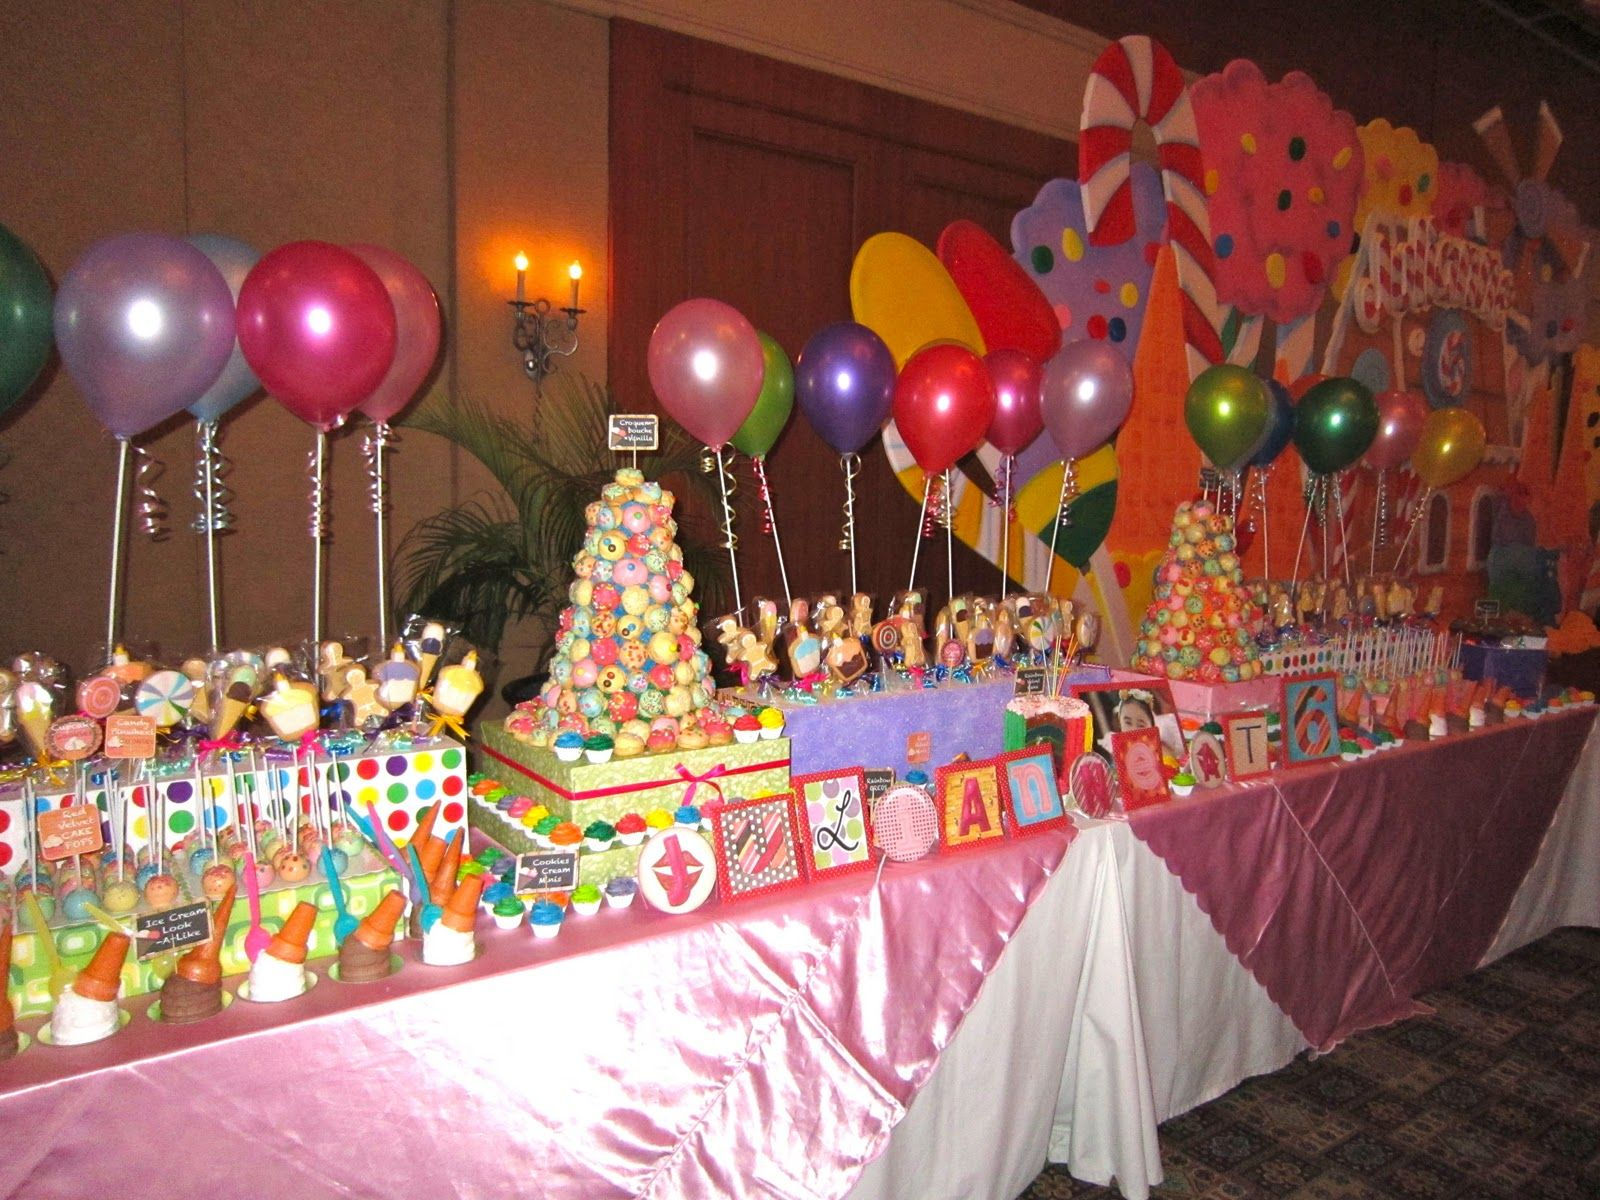 Candyland Theme Cakes | Candyland Themed Dessert Buffet, LMG Pastry ...